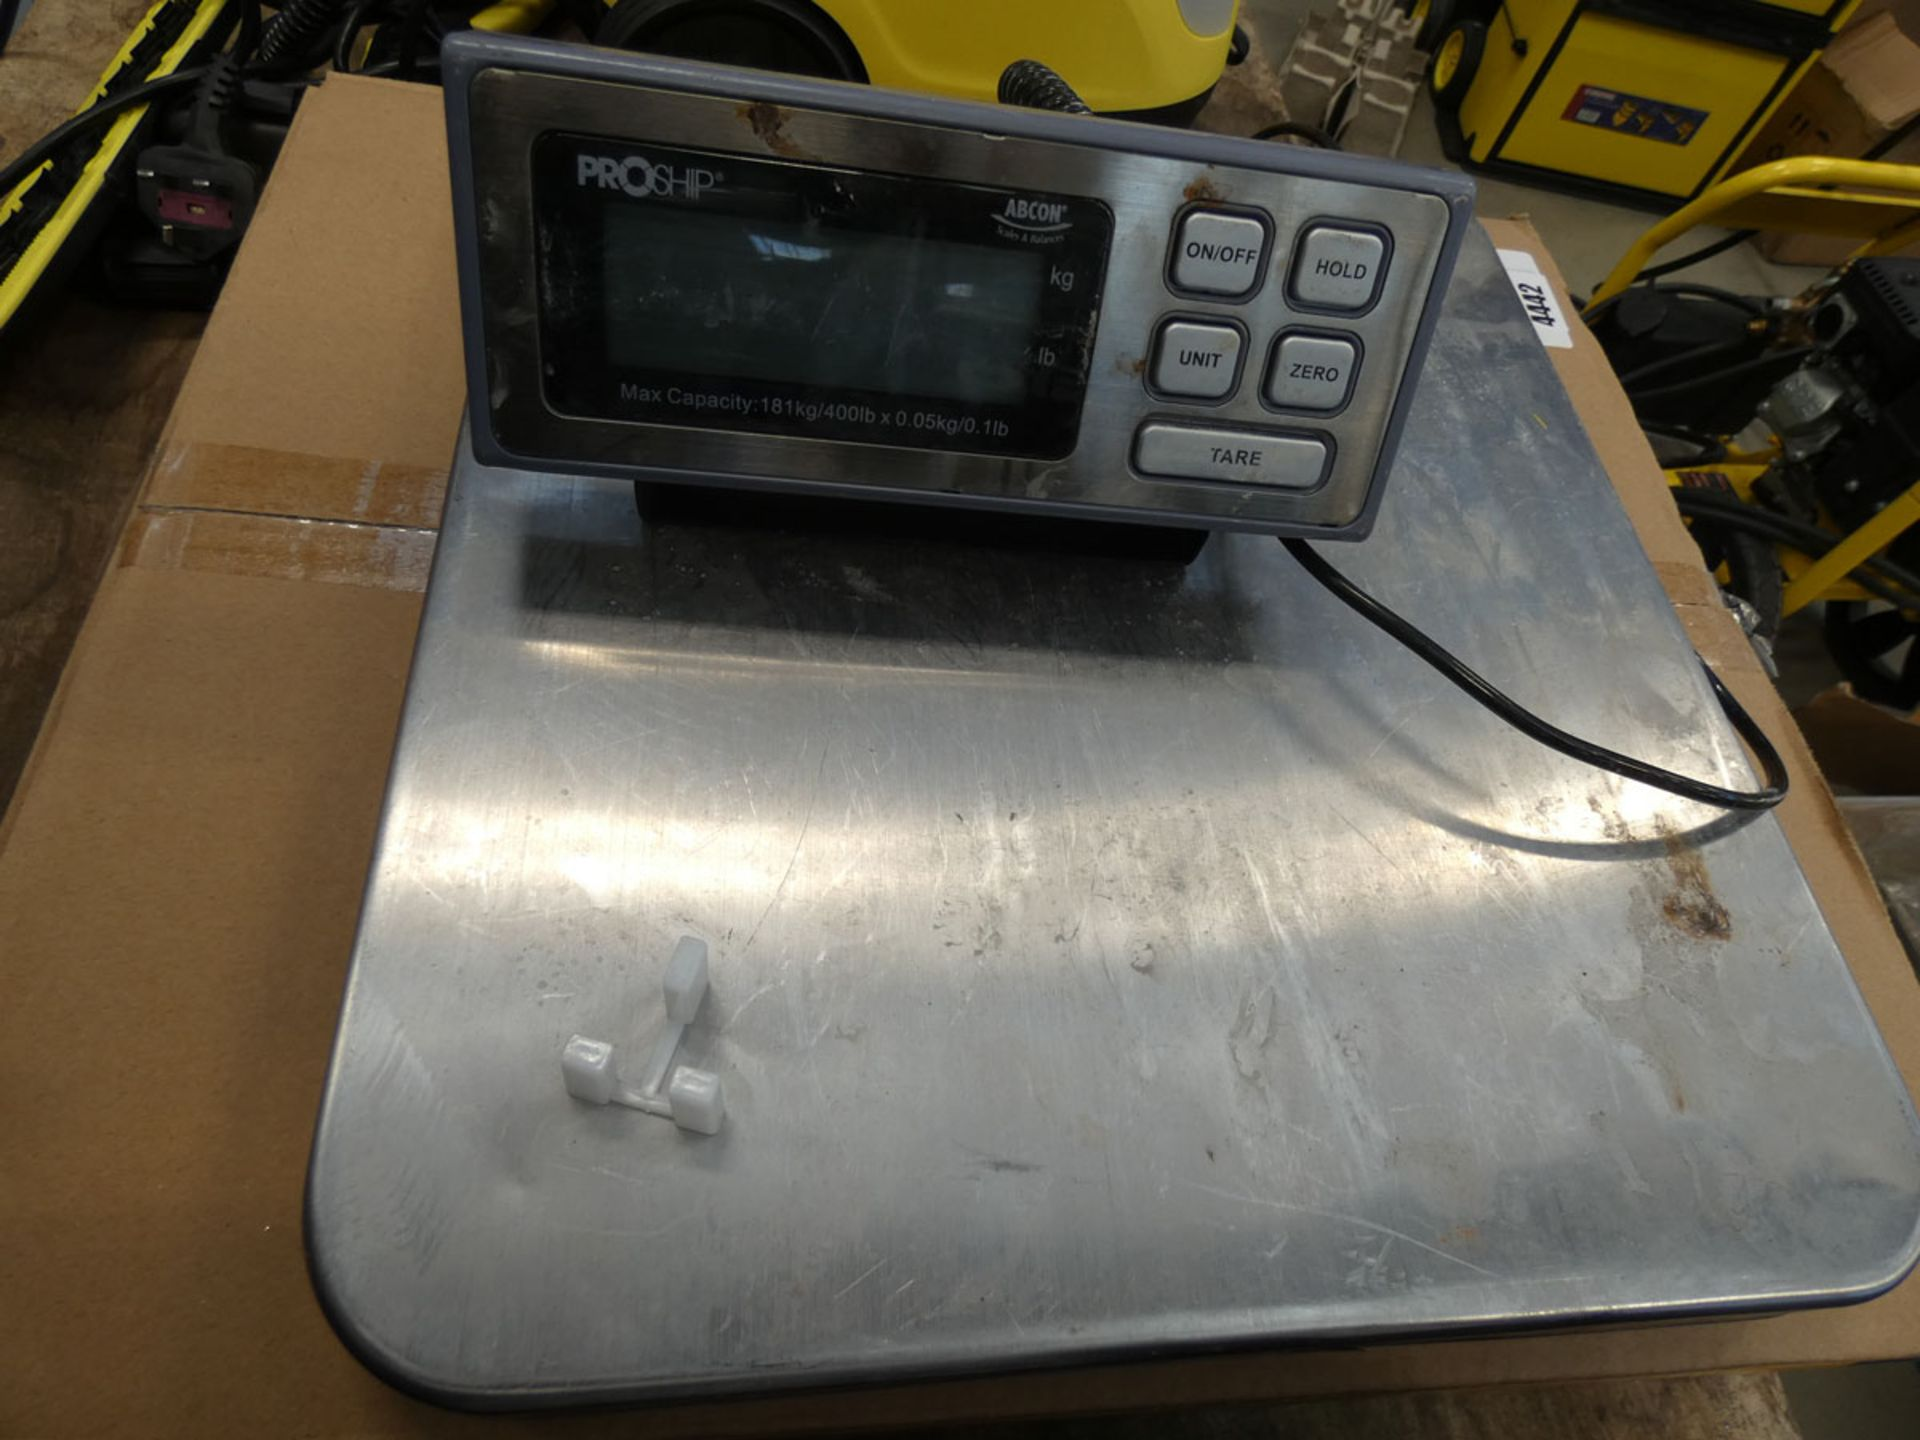 1 boxed and 1 unboxed ProShip weighing scales